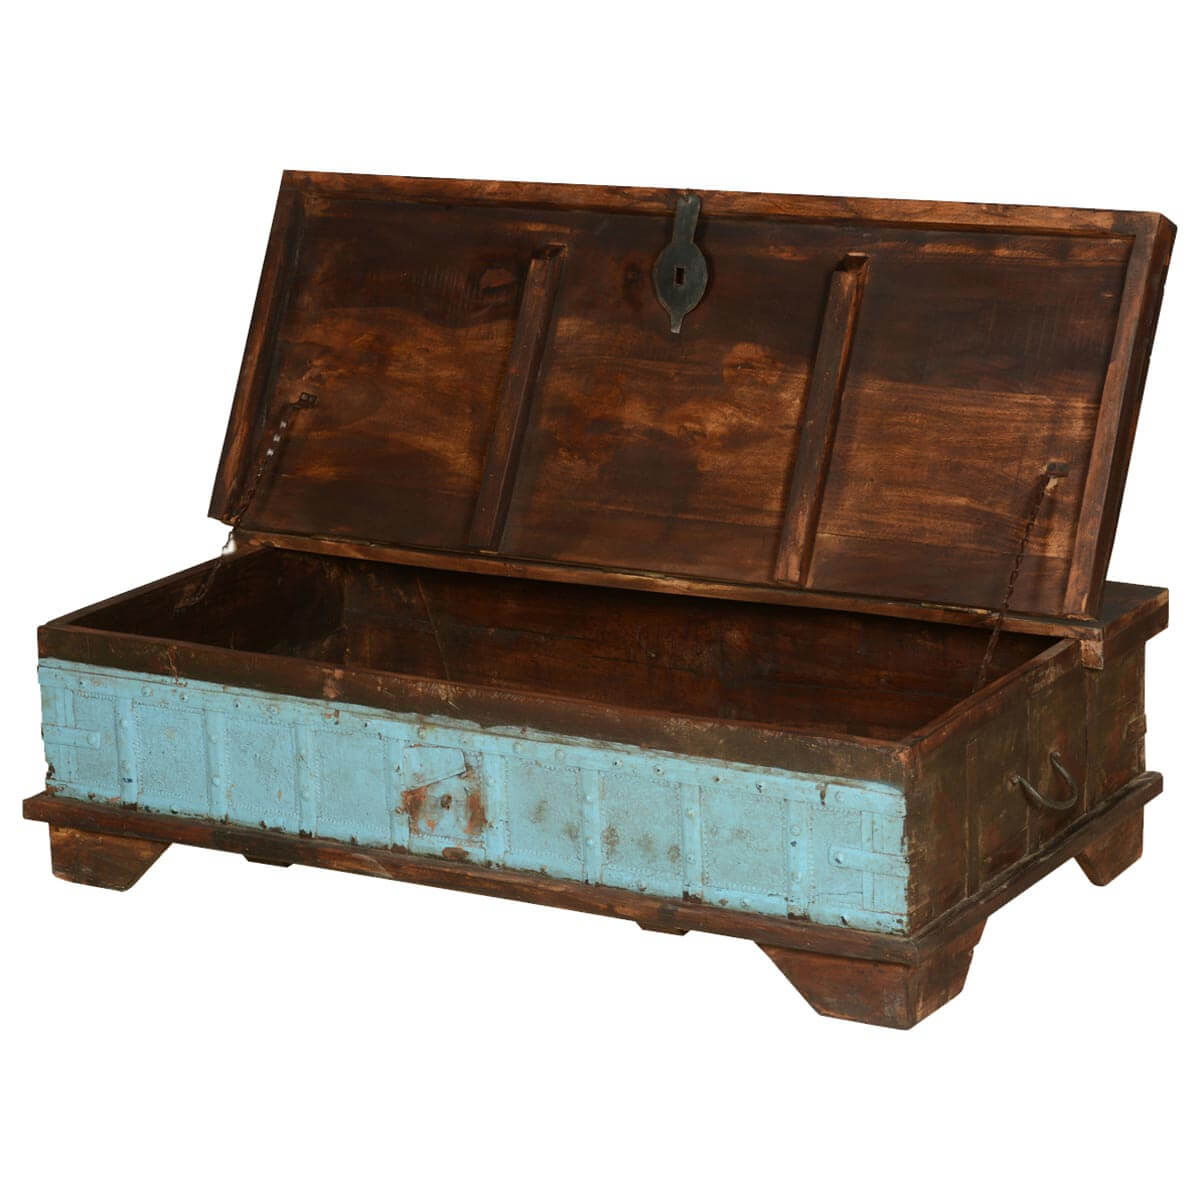 Trunks amp chests blue front distressed reclaimed wood coffee table